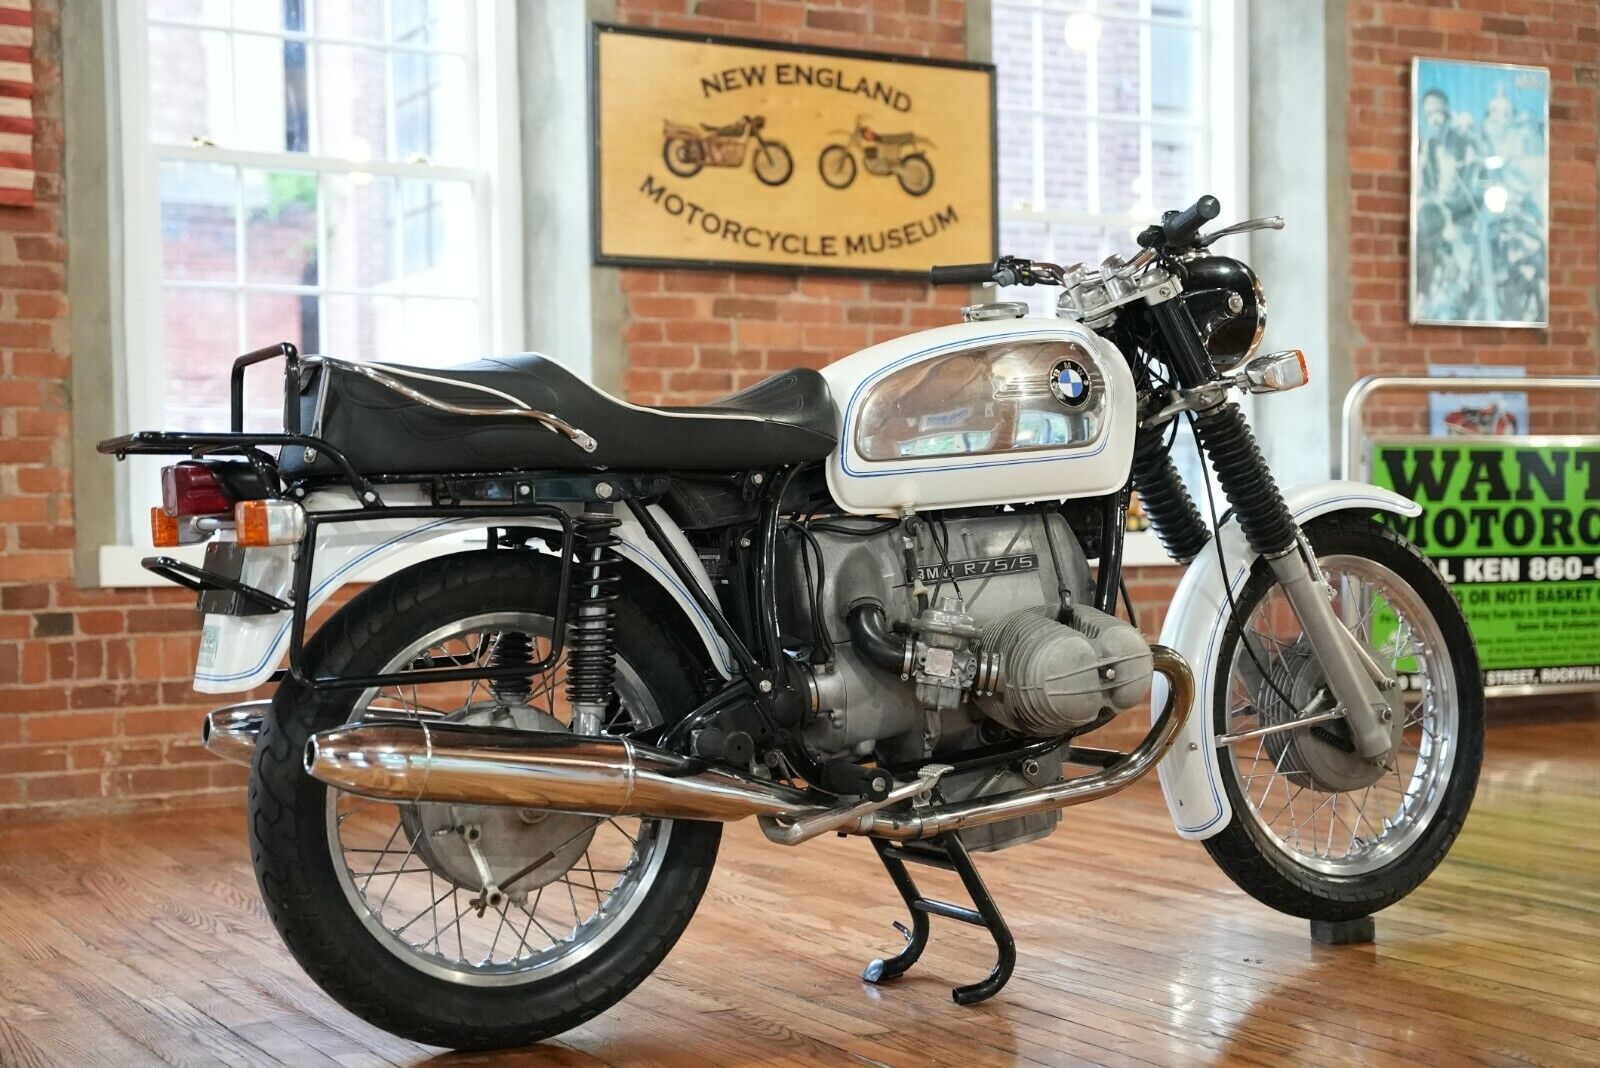 1972 BMW R75/5 Gorgeous Classic Toaster Tank In the Original Factory White Paint